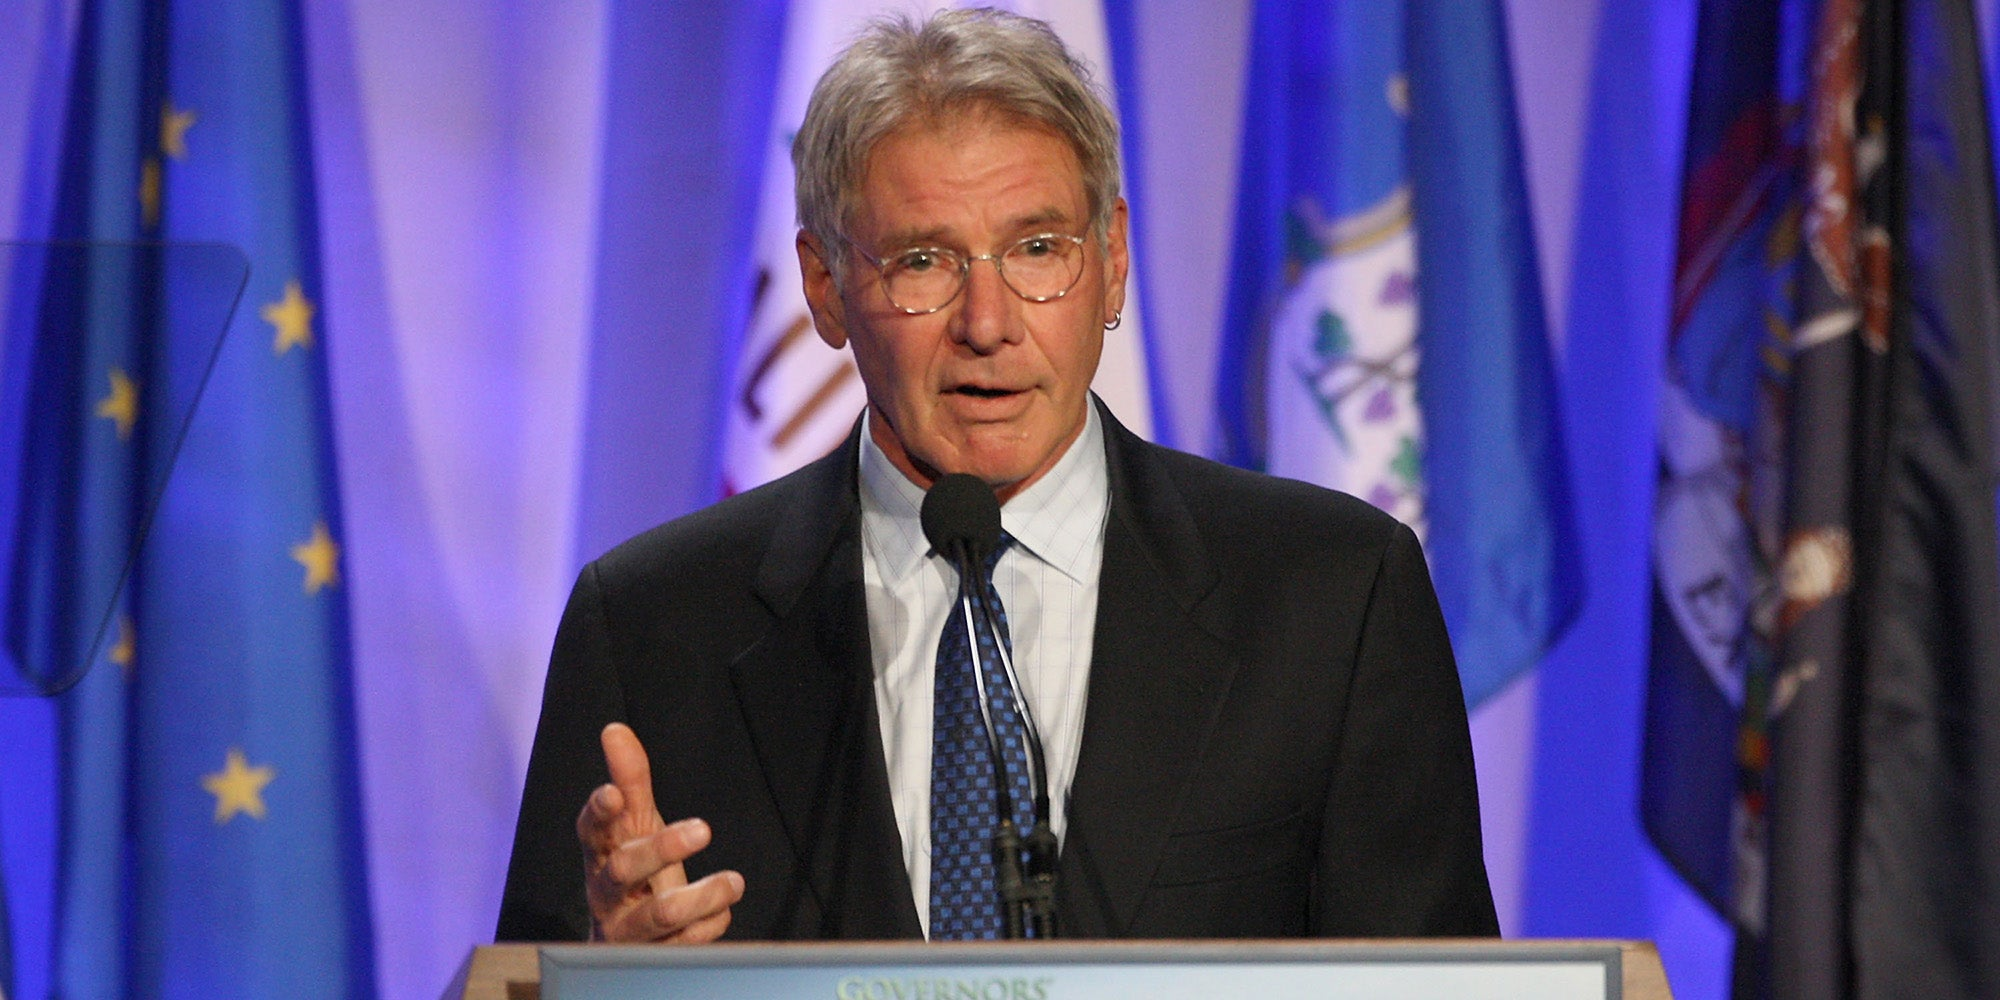 Harrison Ford warns of apocalyptic catastrophe in climate change video